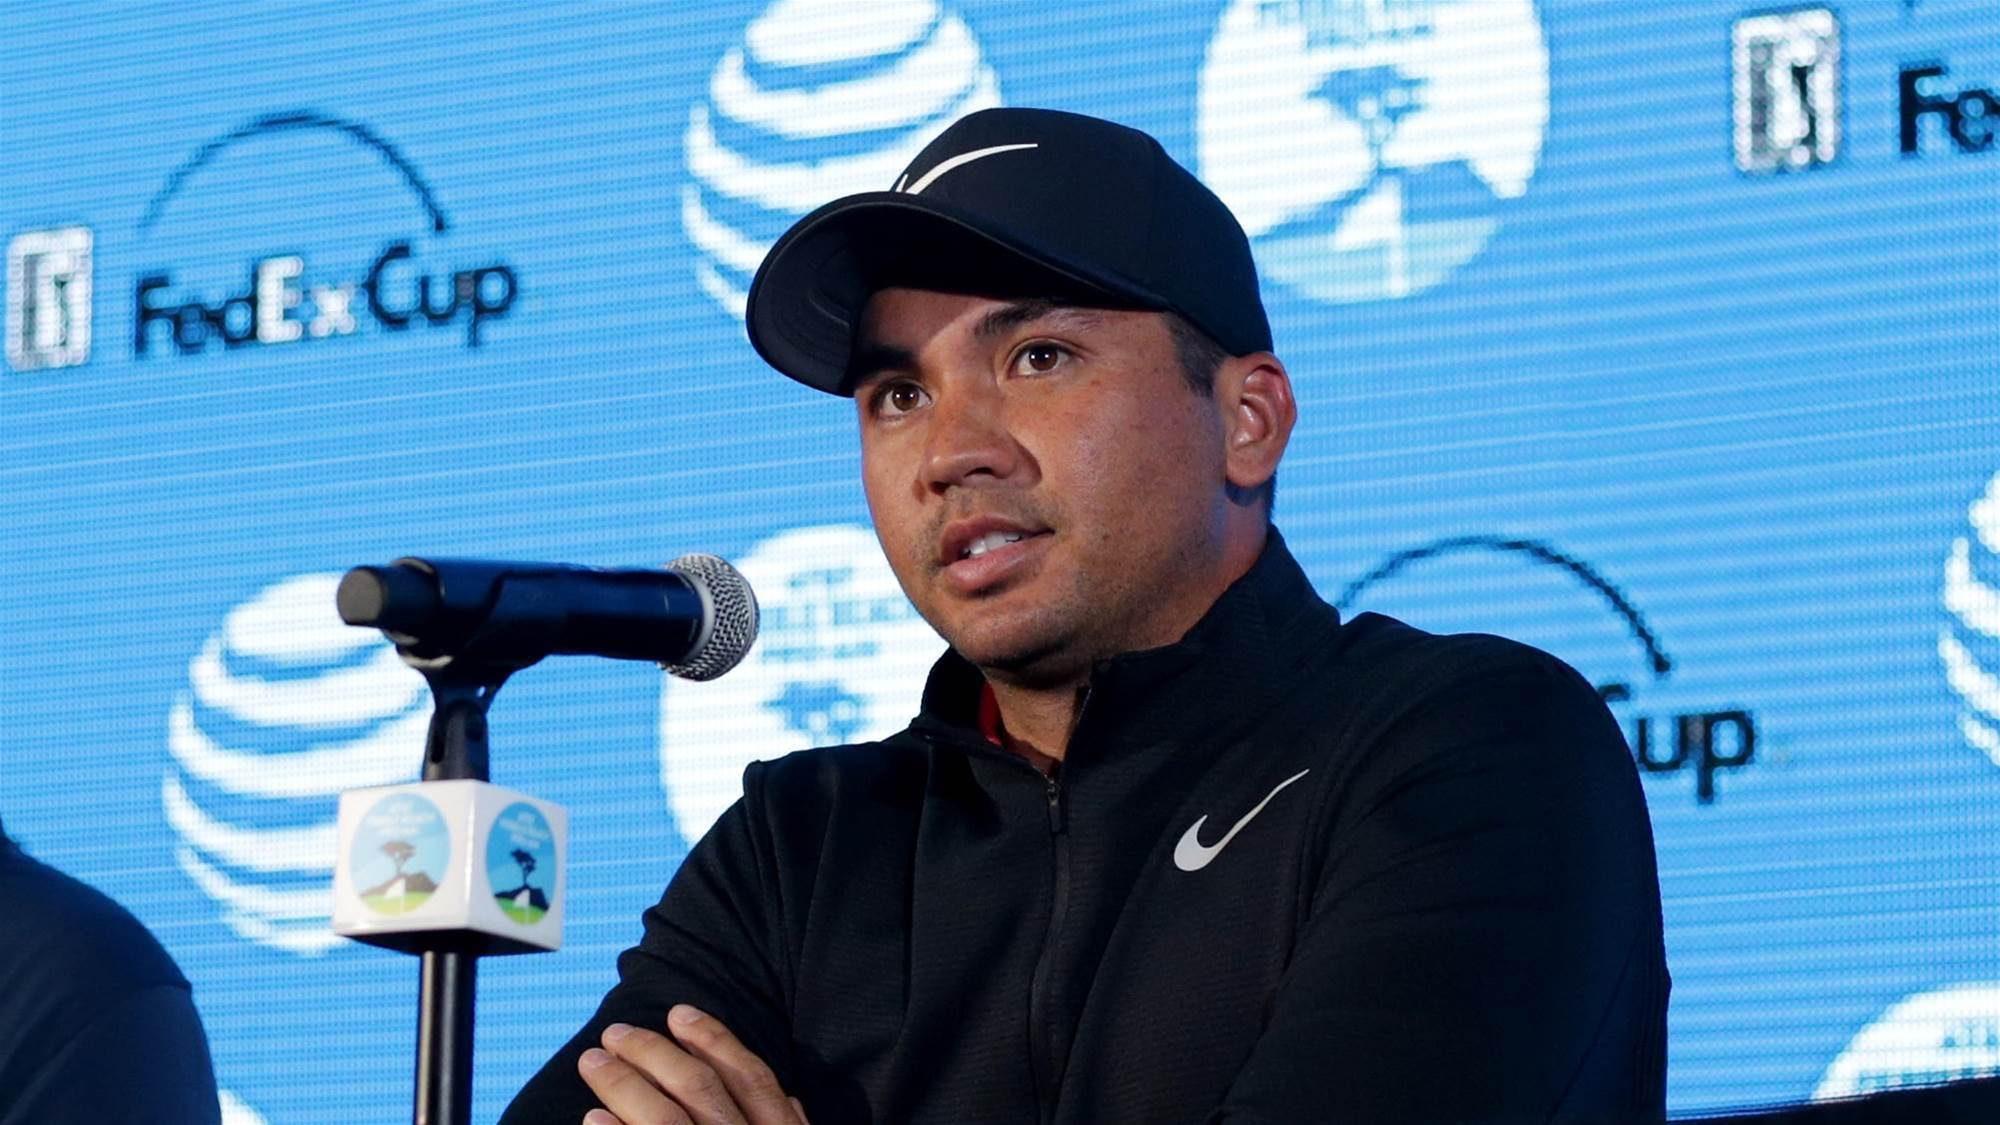 Jason Day eyes Norman's PGA win record